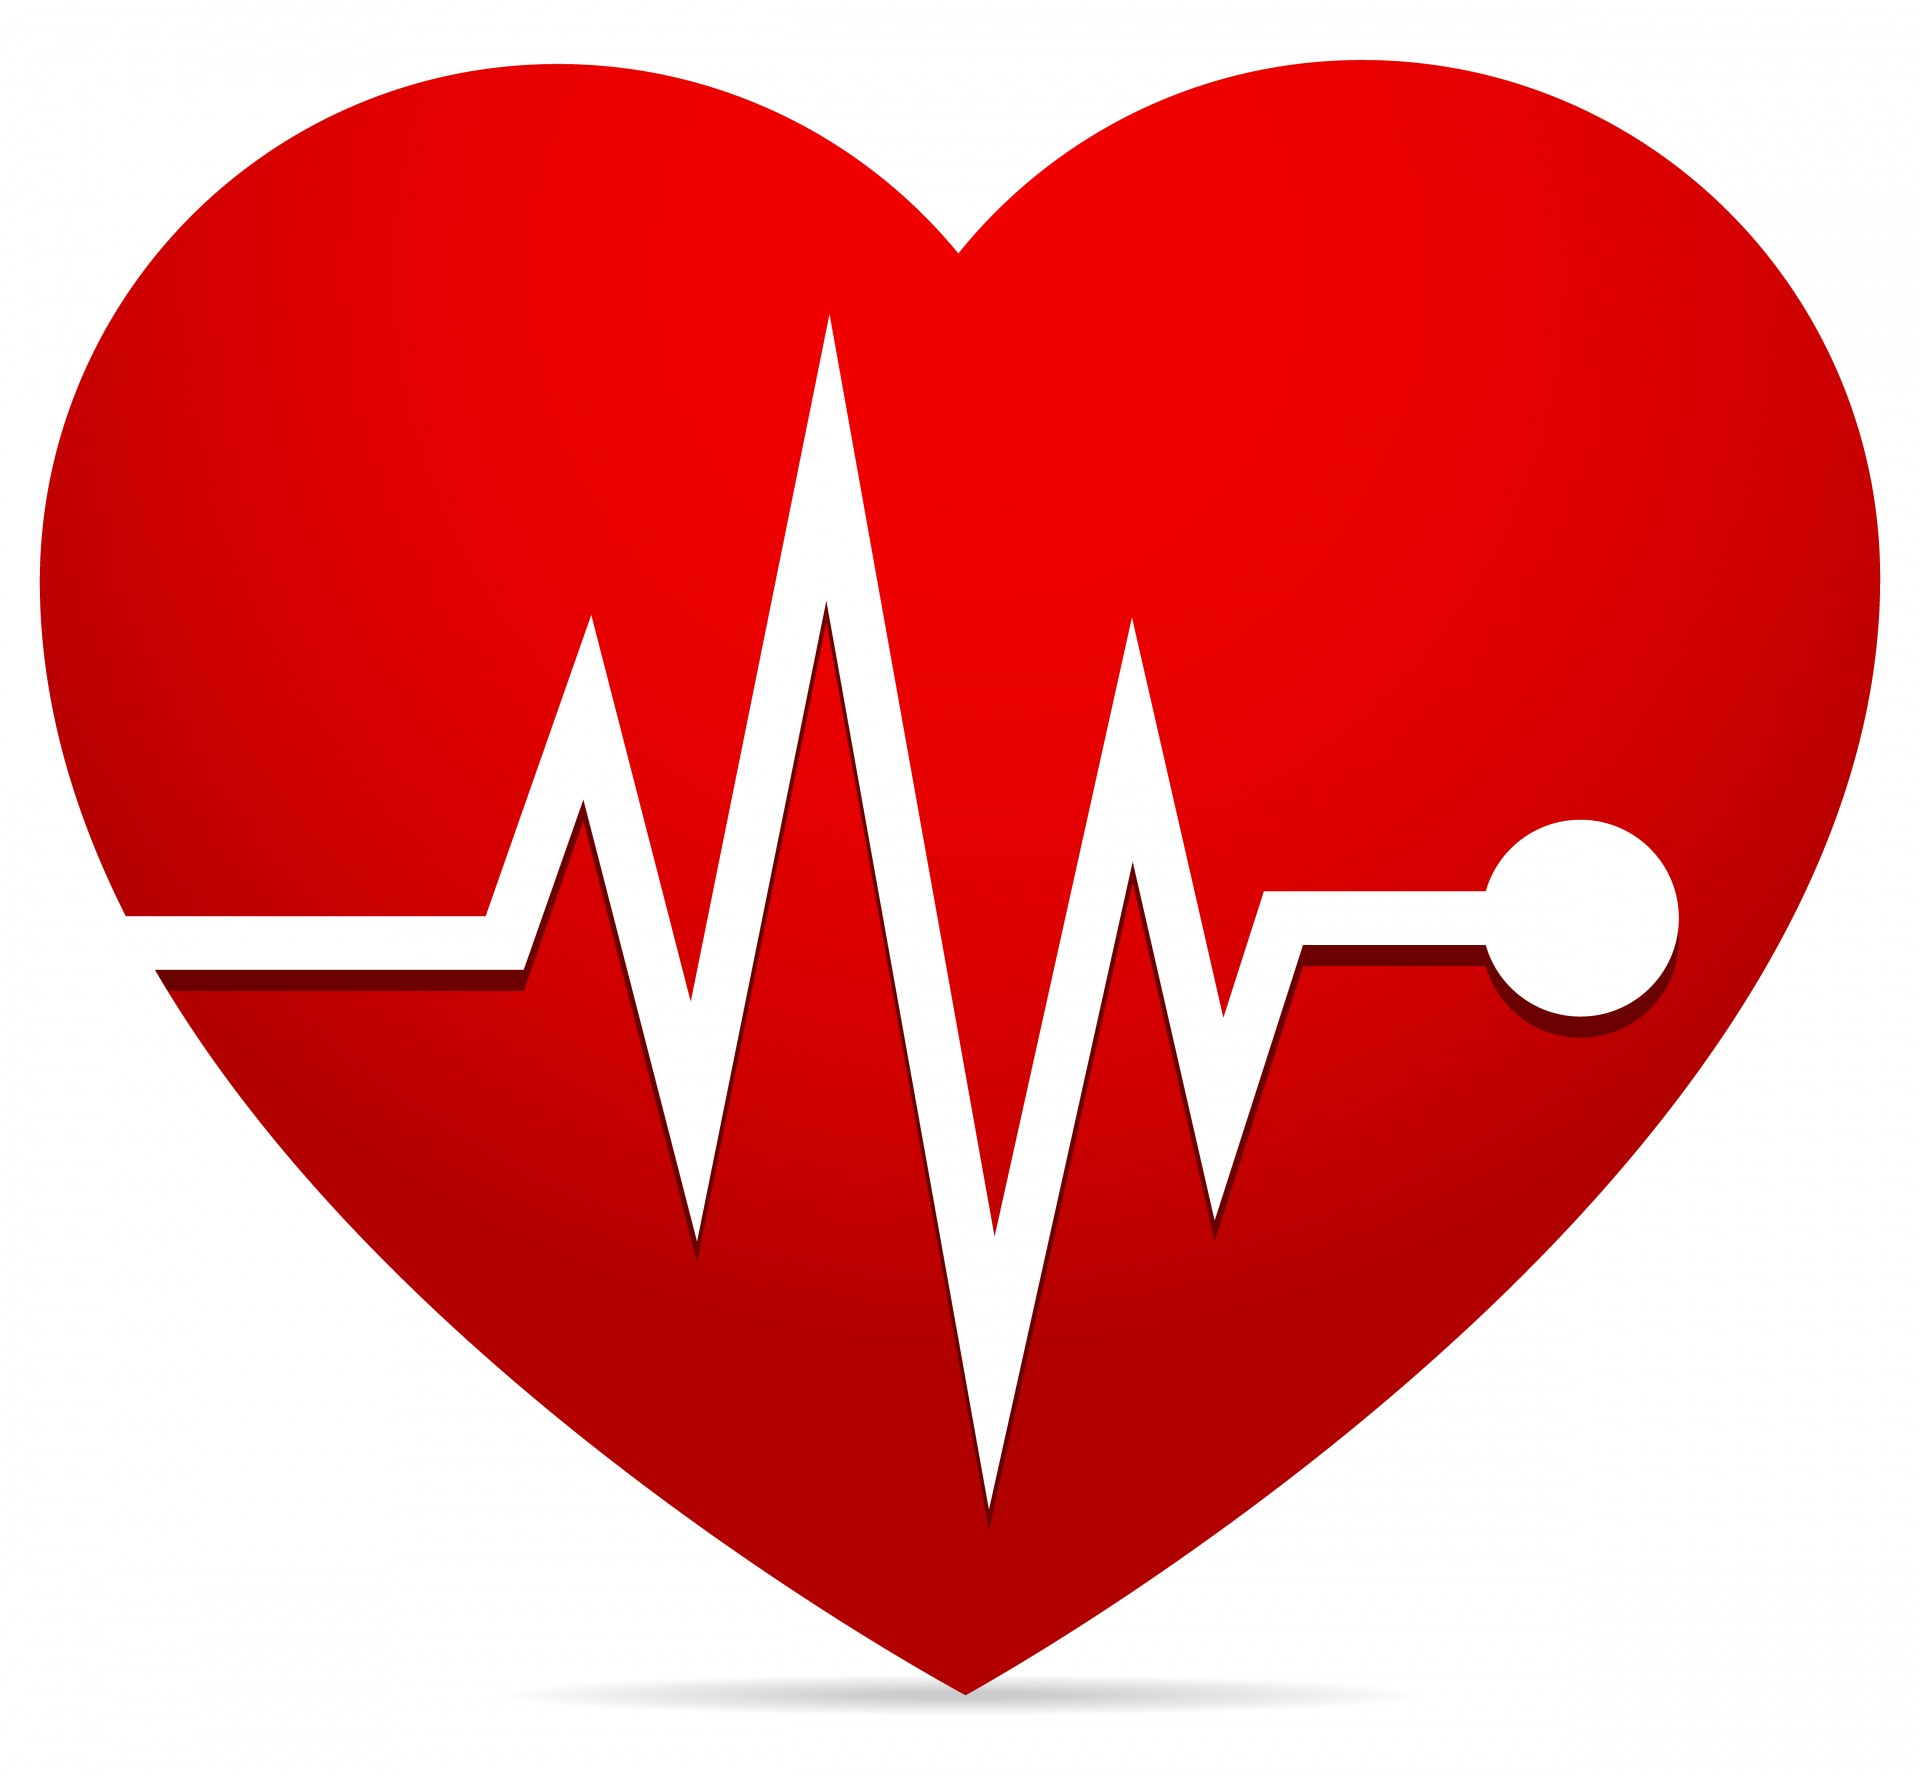 Good heart health is critical for a healthy life.